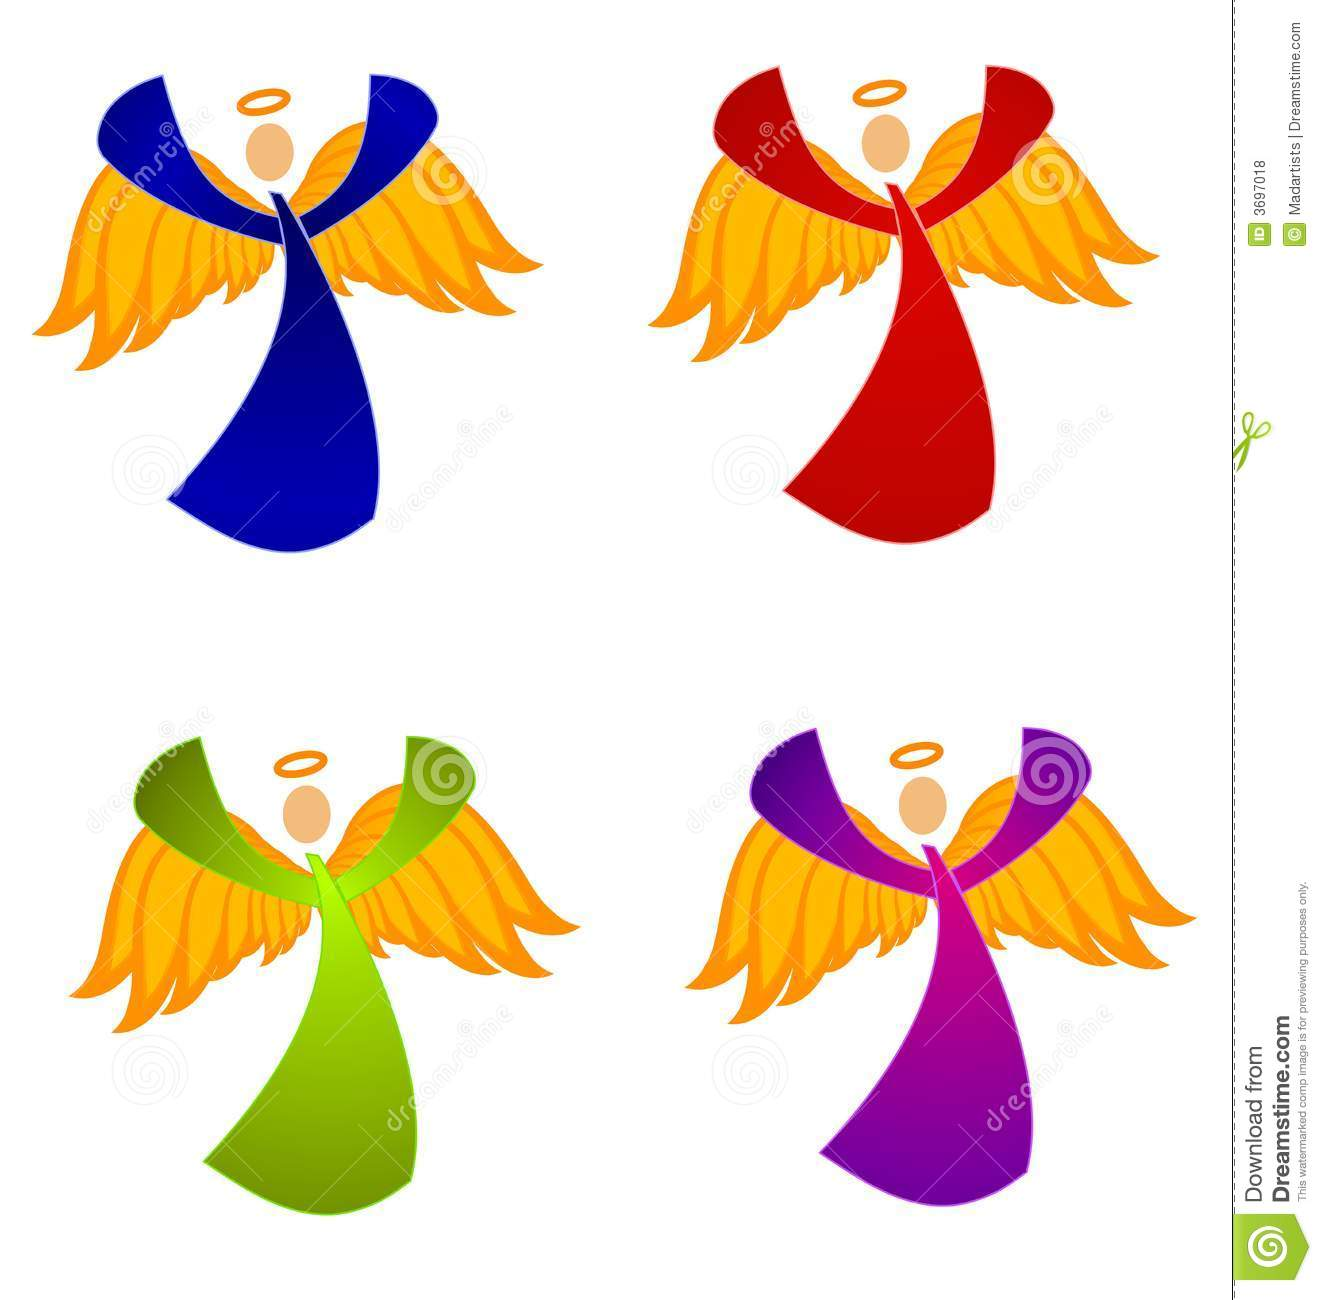 variety of christmas angels clip art stock illustration rh dreamstime com christmas angel clipart black and white free victorian christmas angel clipart